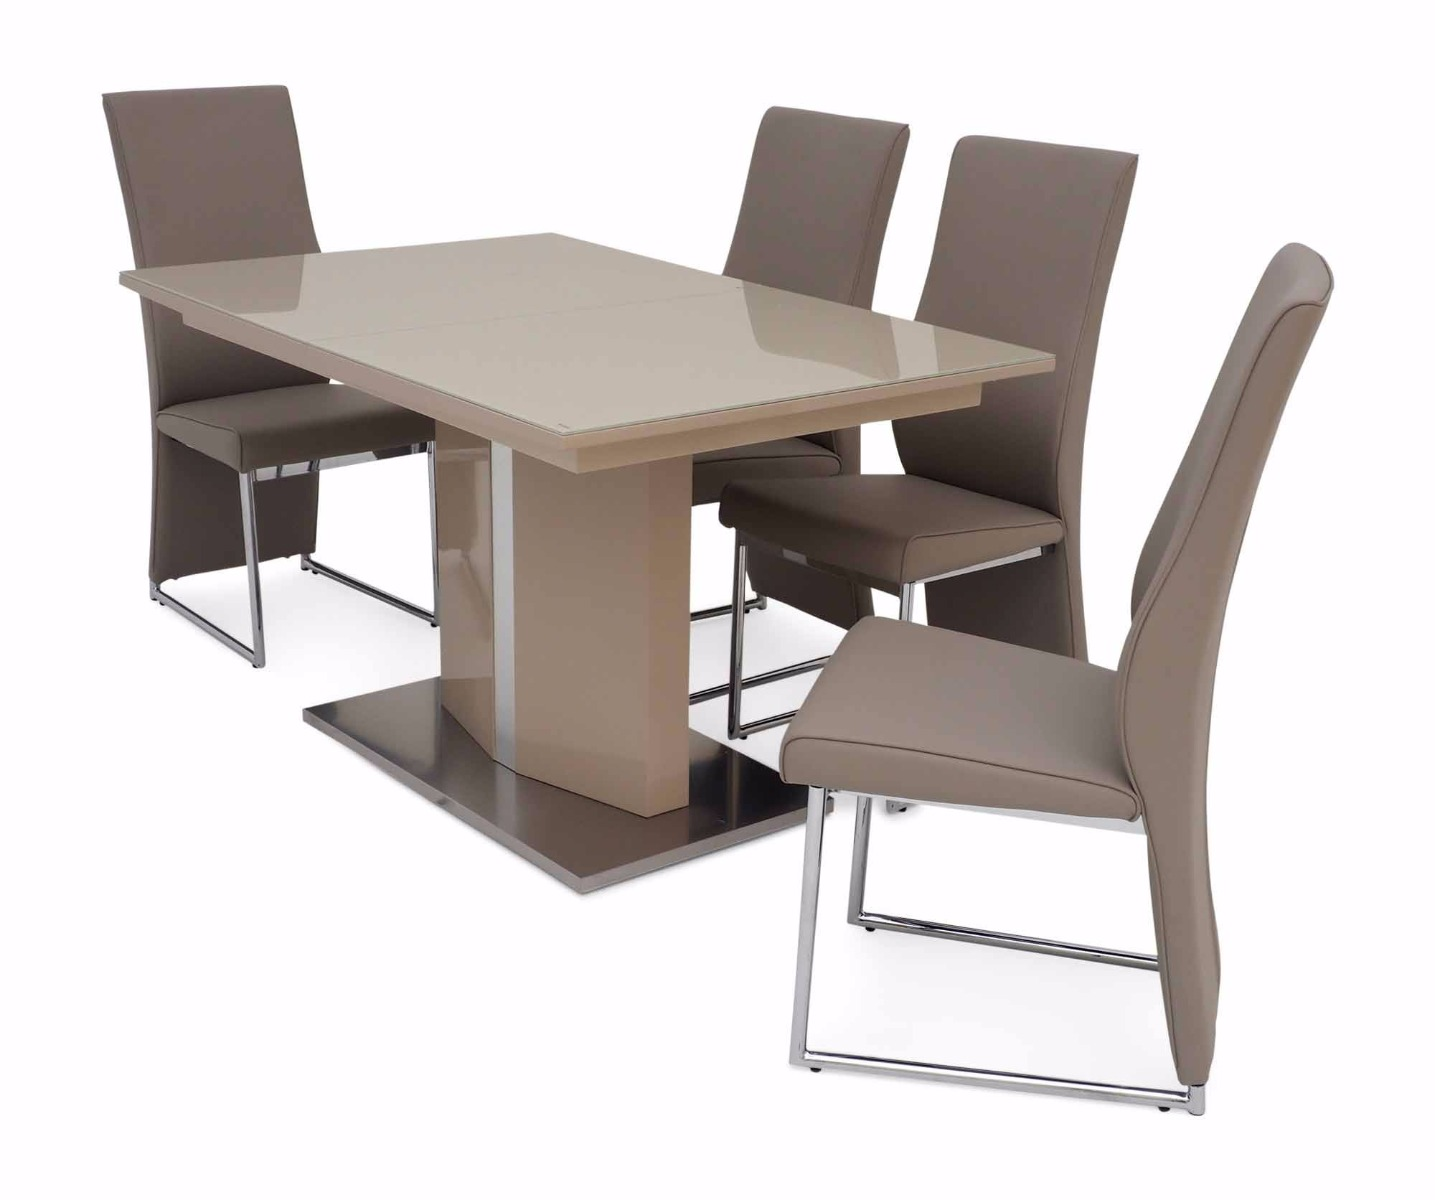 https://www.firstfurniture.co.uk/pub/media/catalog/product/f/a/fairmont_silvio_ext_cream_high_gloss_dining_table_4_remo_black_chairs_3.jpg